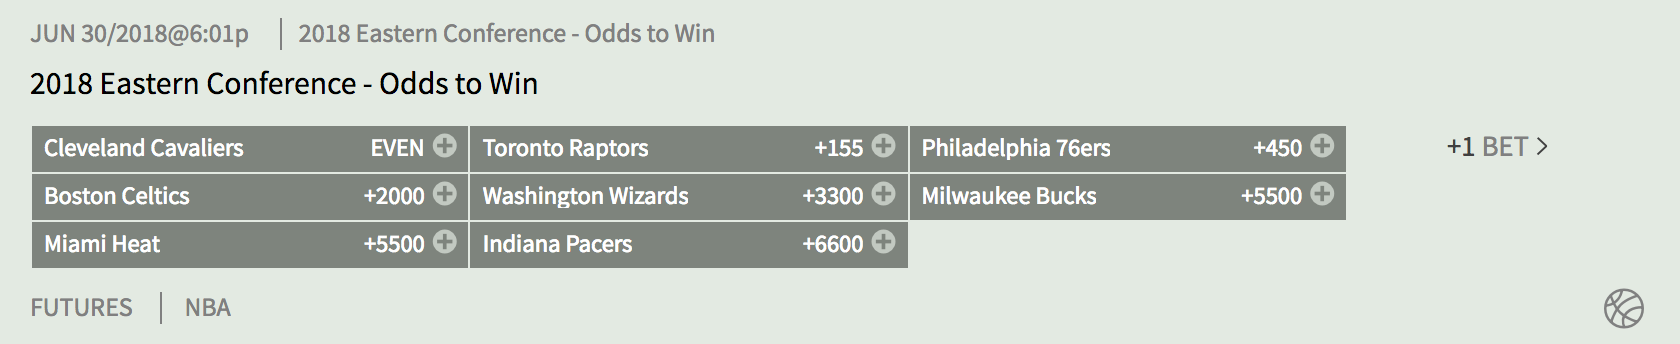 2018 Eastern Conference - Odds to Win at Bodog